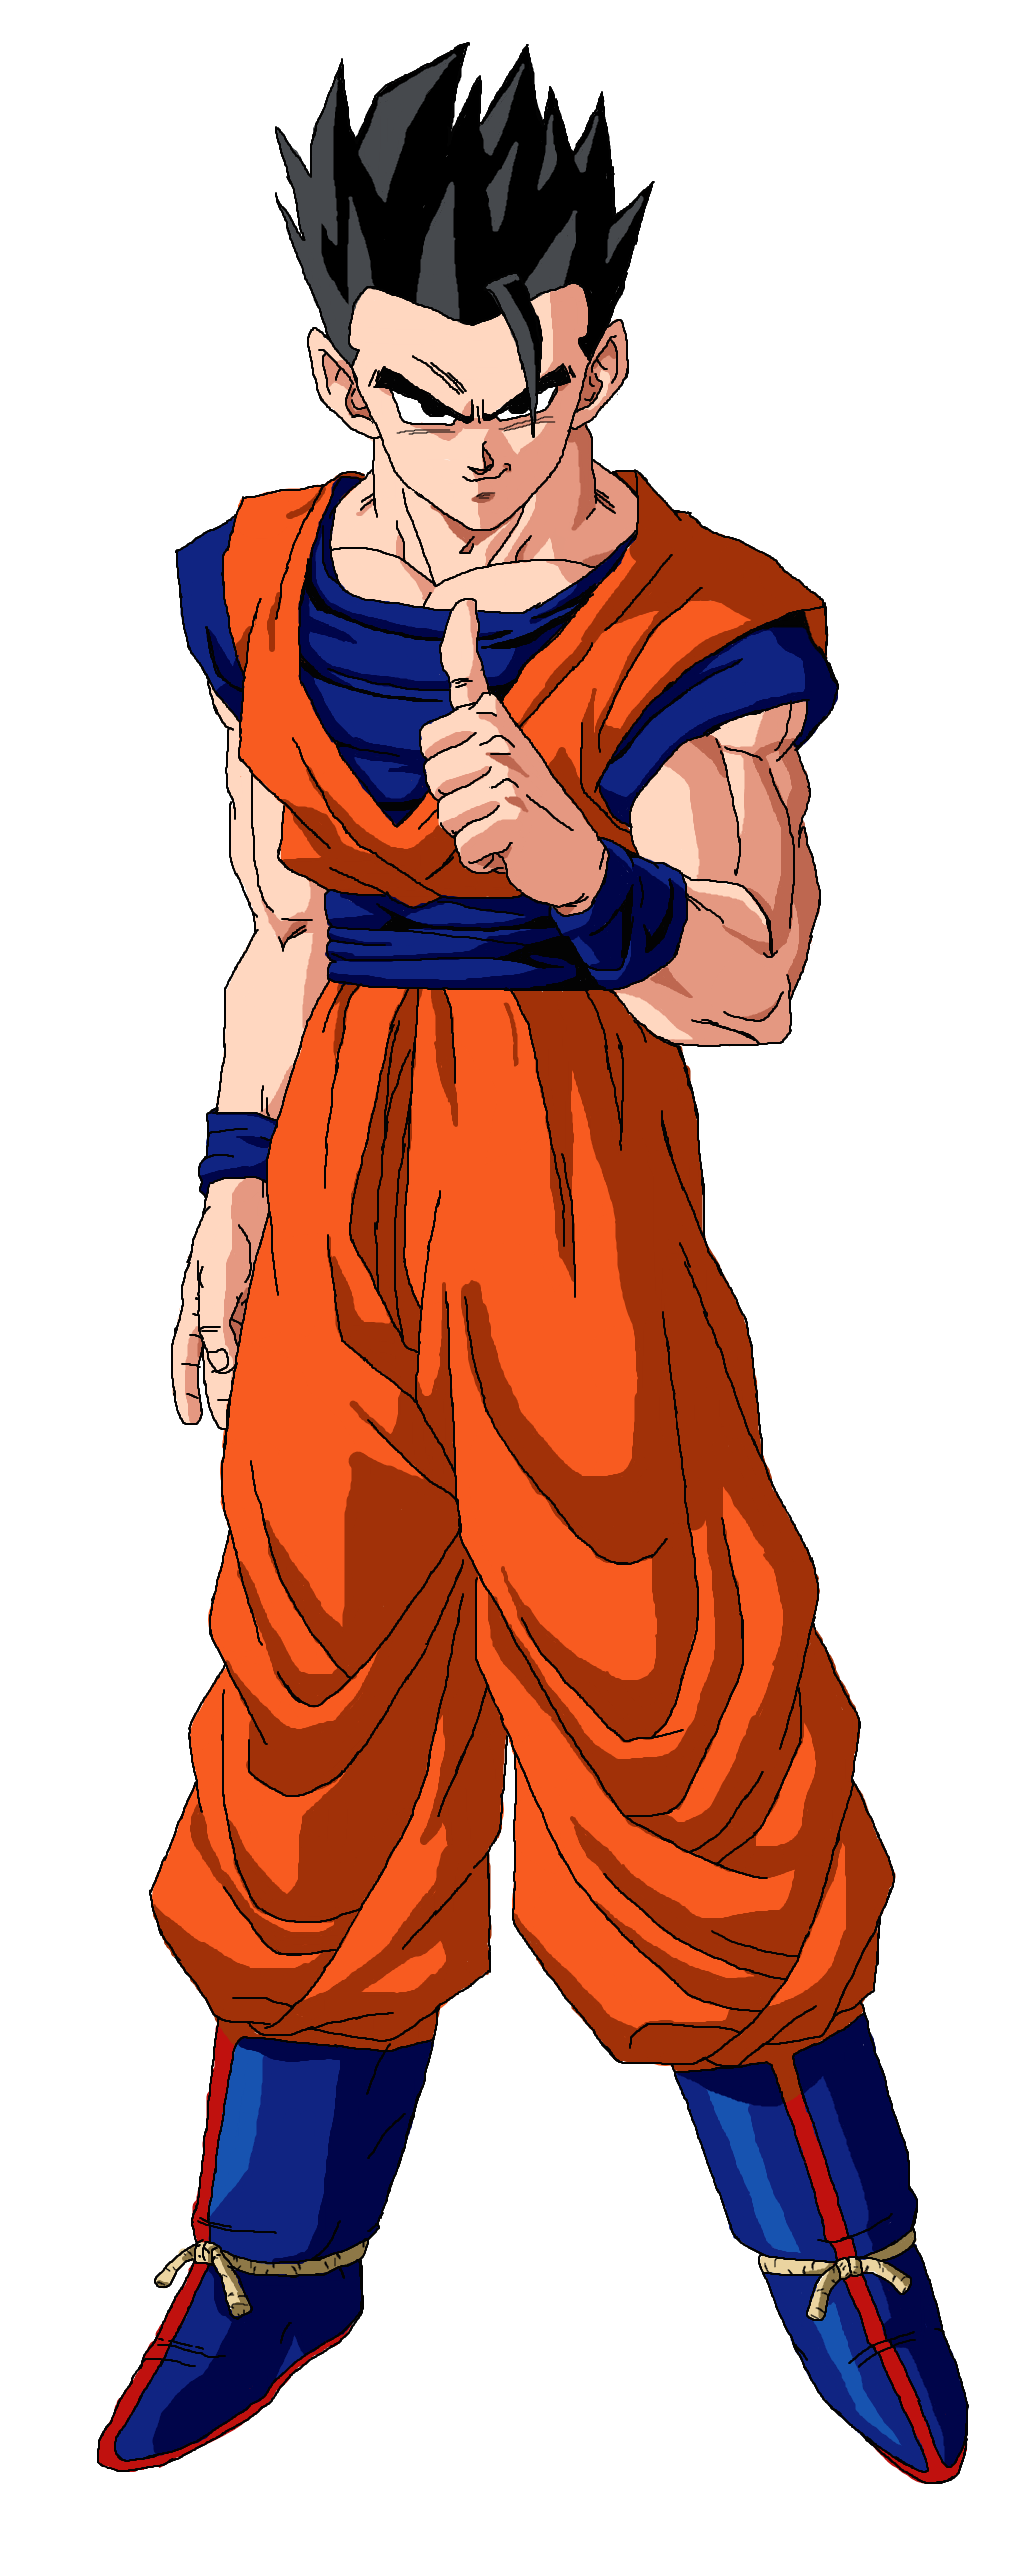 Ultimate gohan vs kid buu post by all for one on aug 13 2015 at 1254pm altavistaventures Image collections